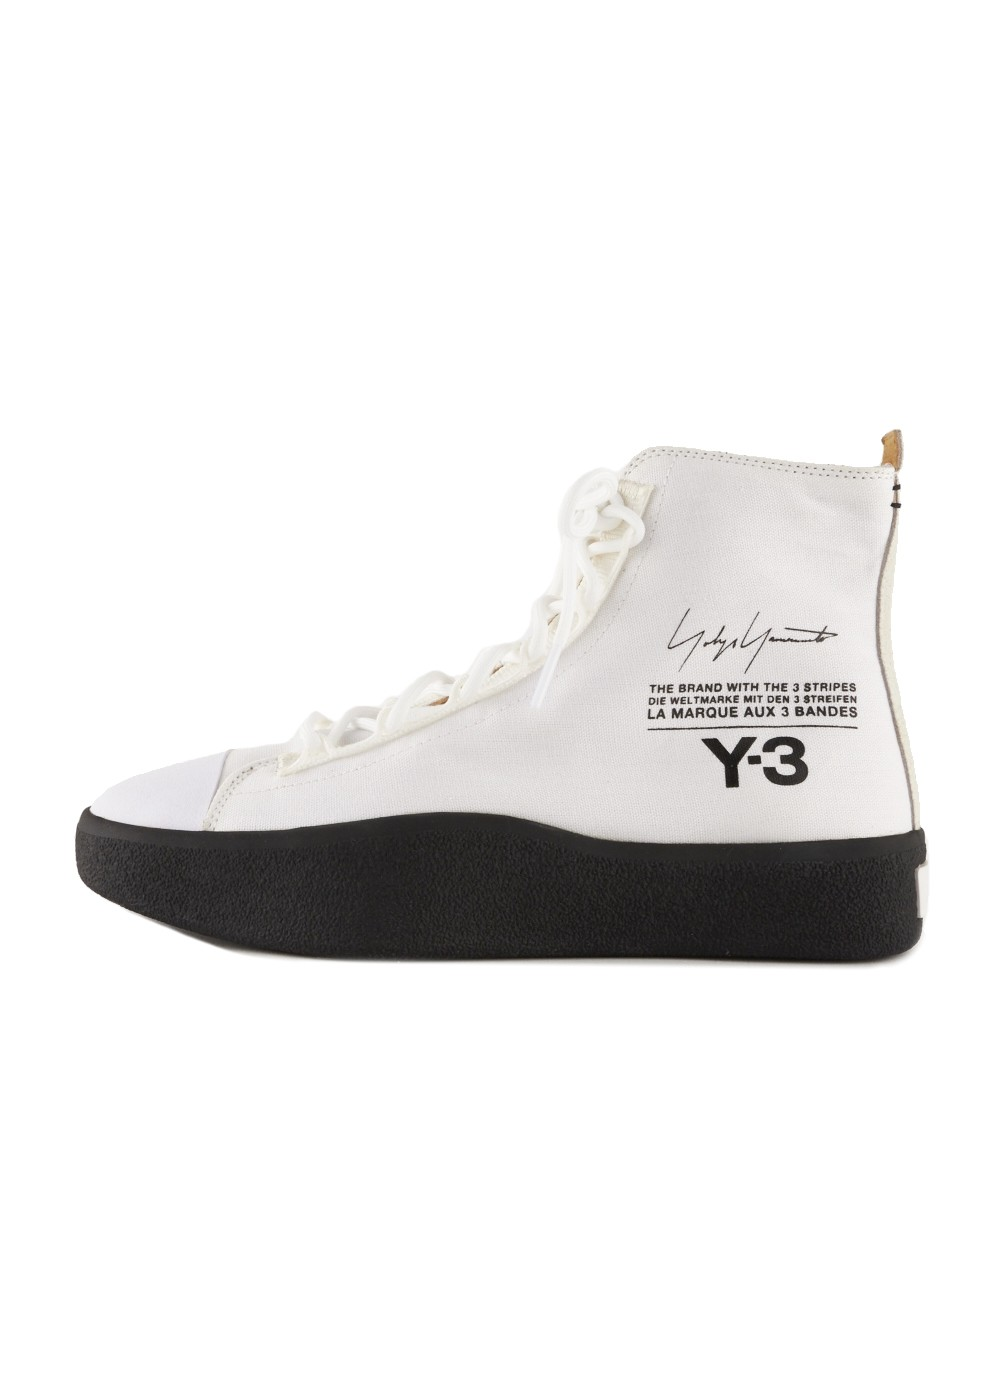 【最大33%OFF】Y-3 BASHYO|FTW WHITE/CORE BLACK/CORE BLACK|スニーカー|adidas Y-3